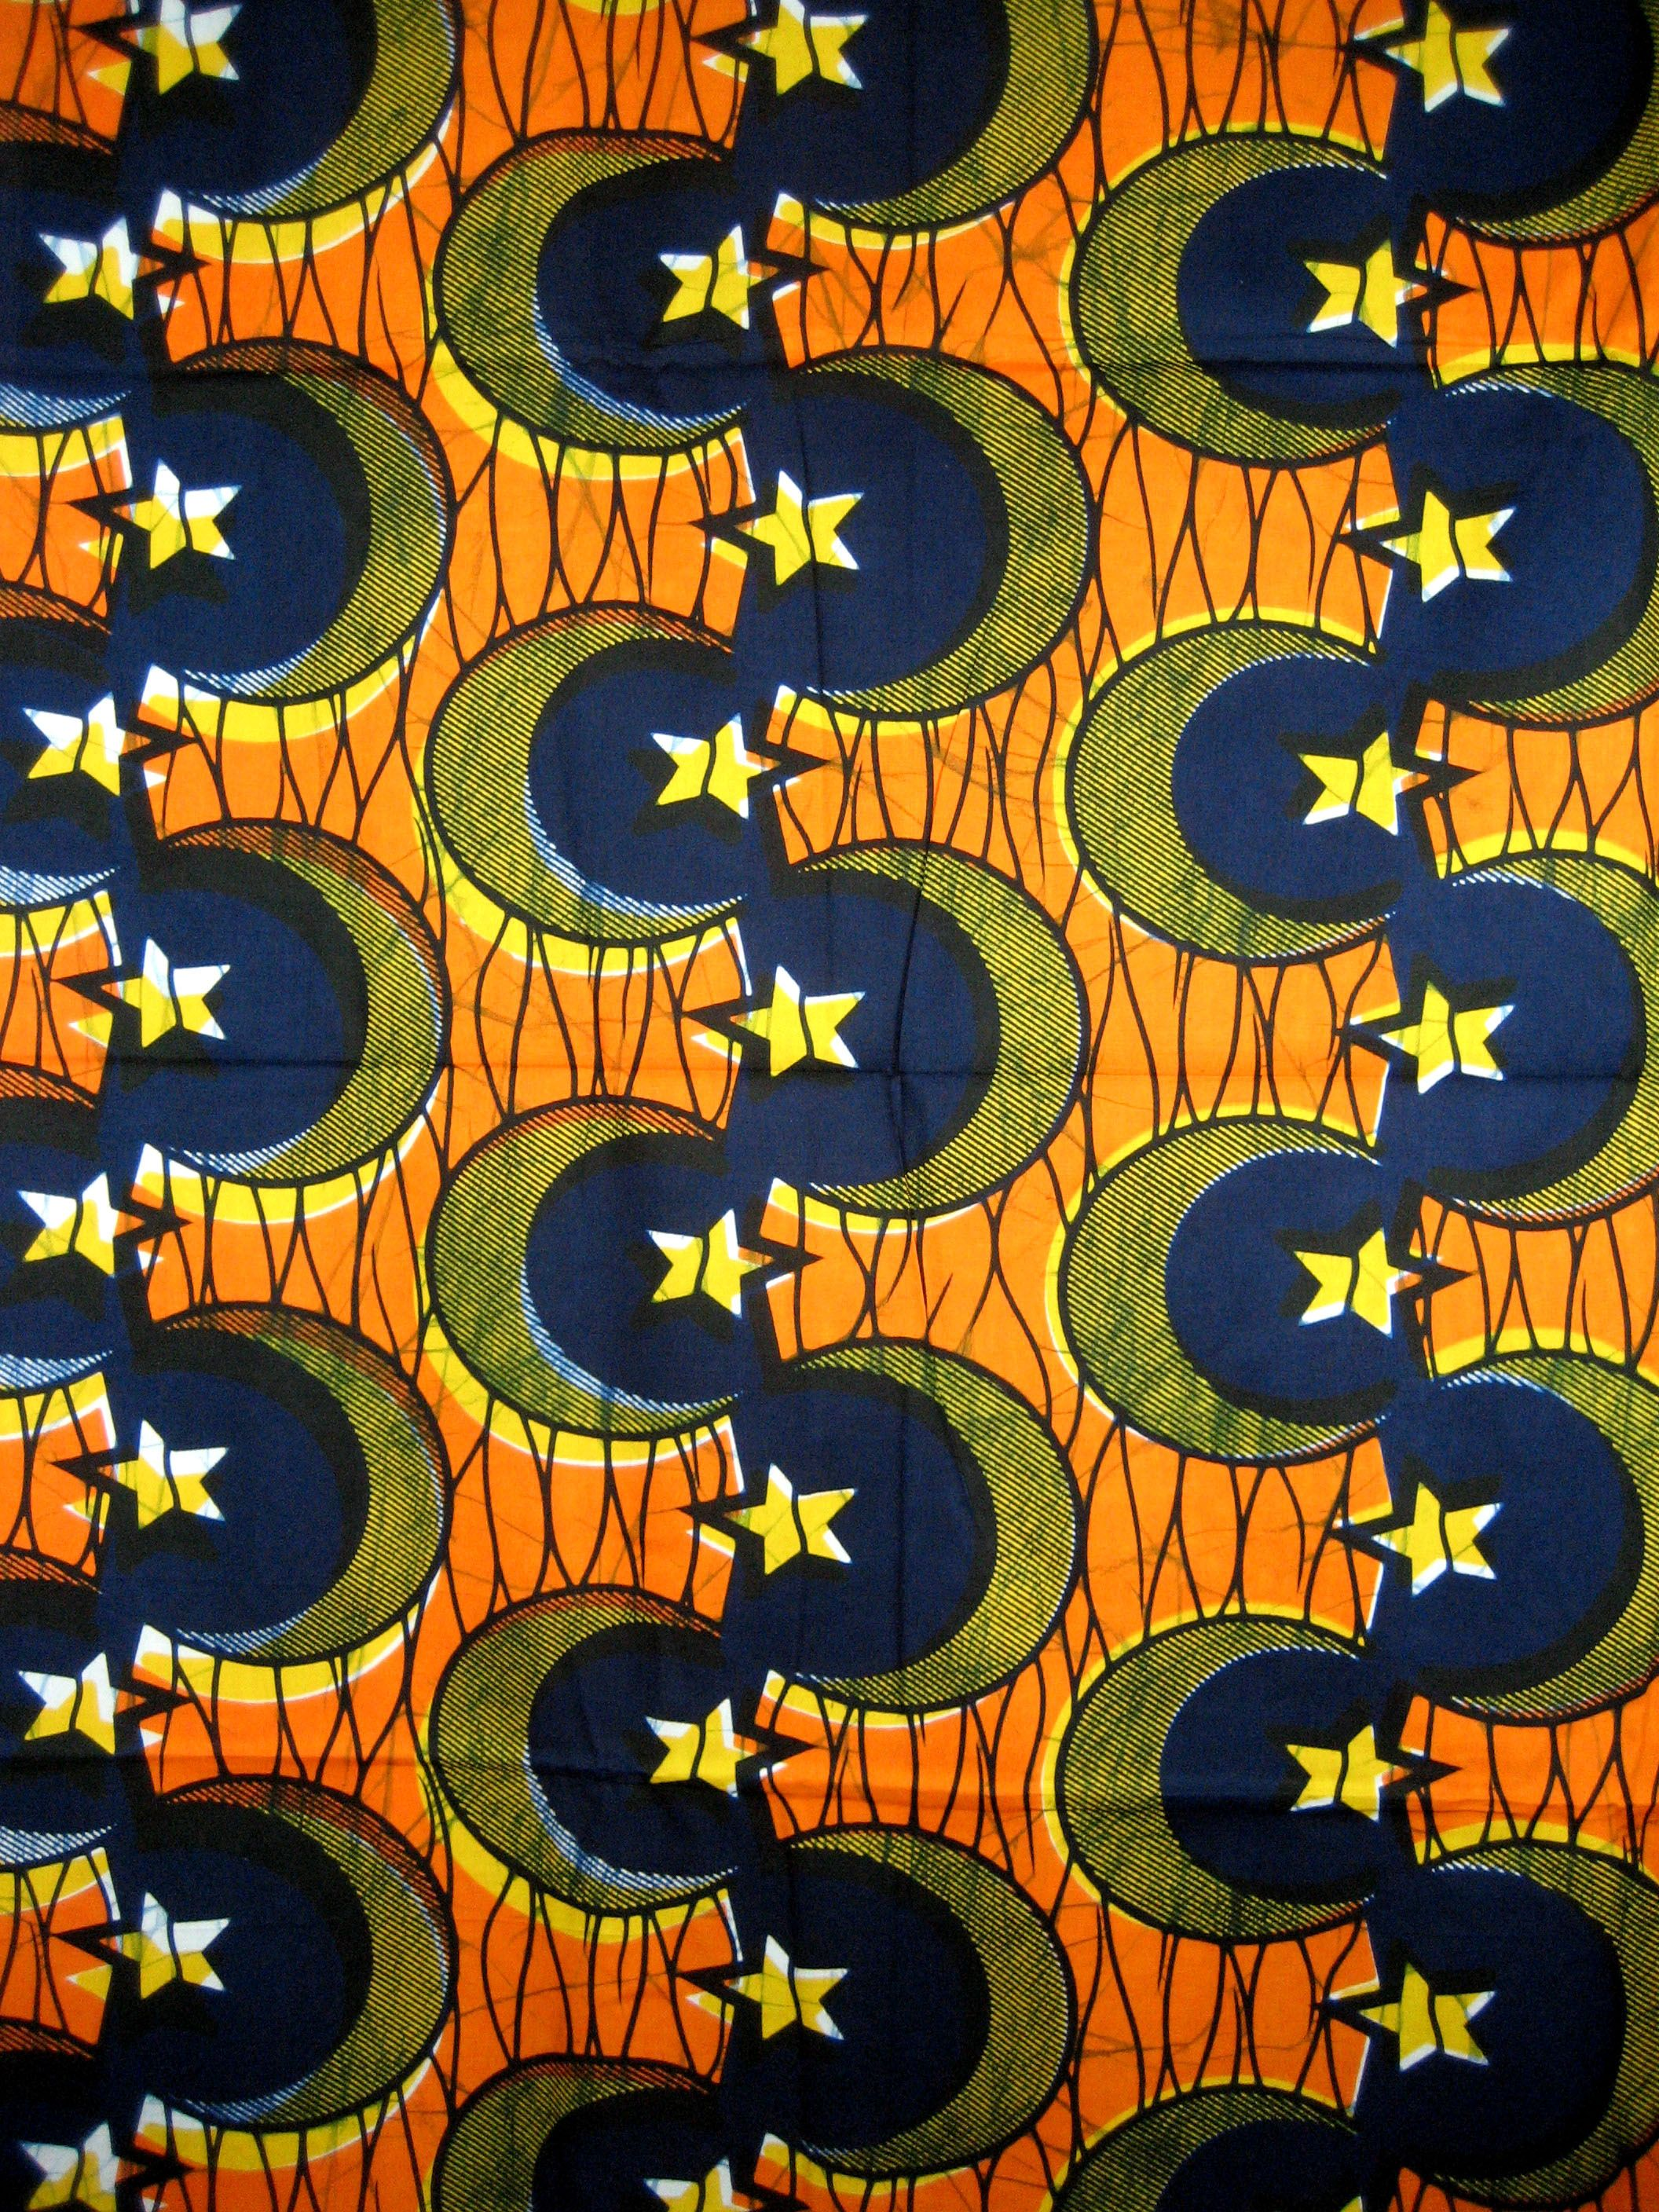 an African style pattern  African textiles, African fabric, African